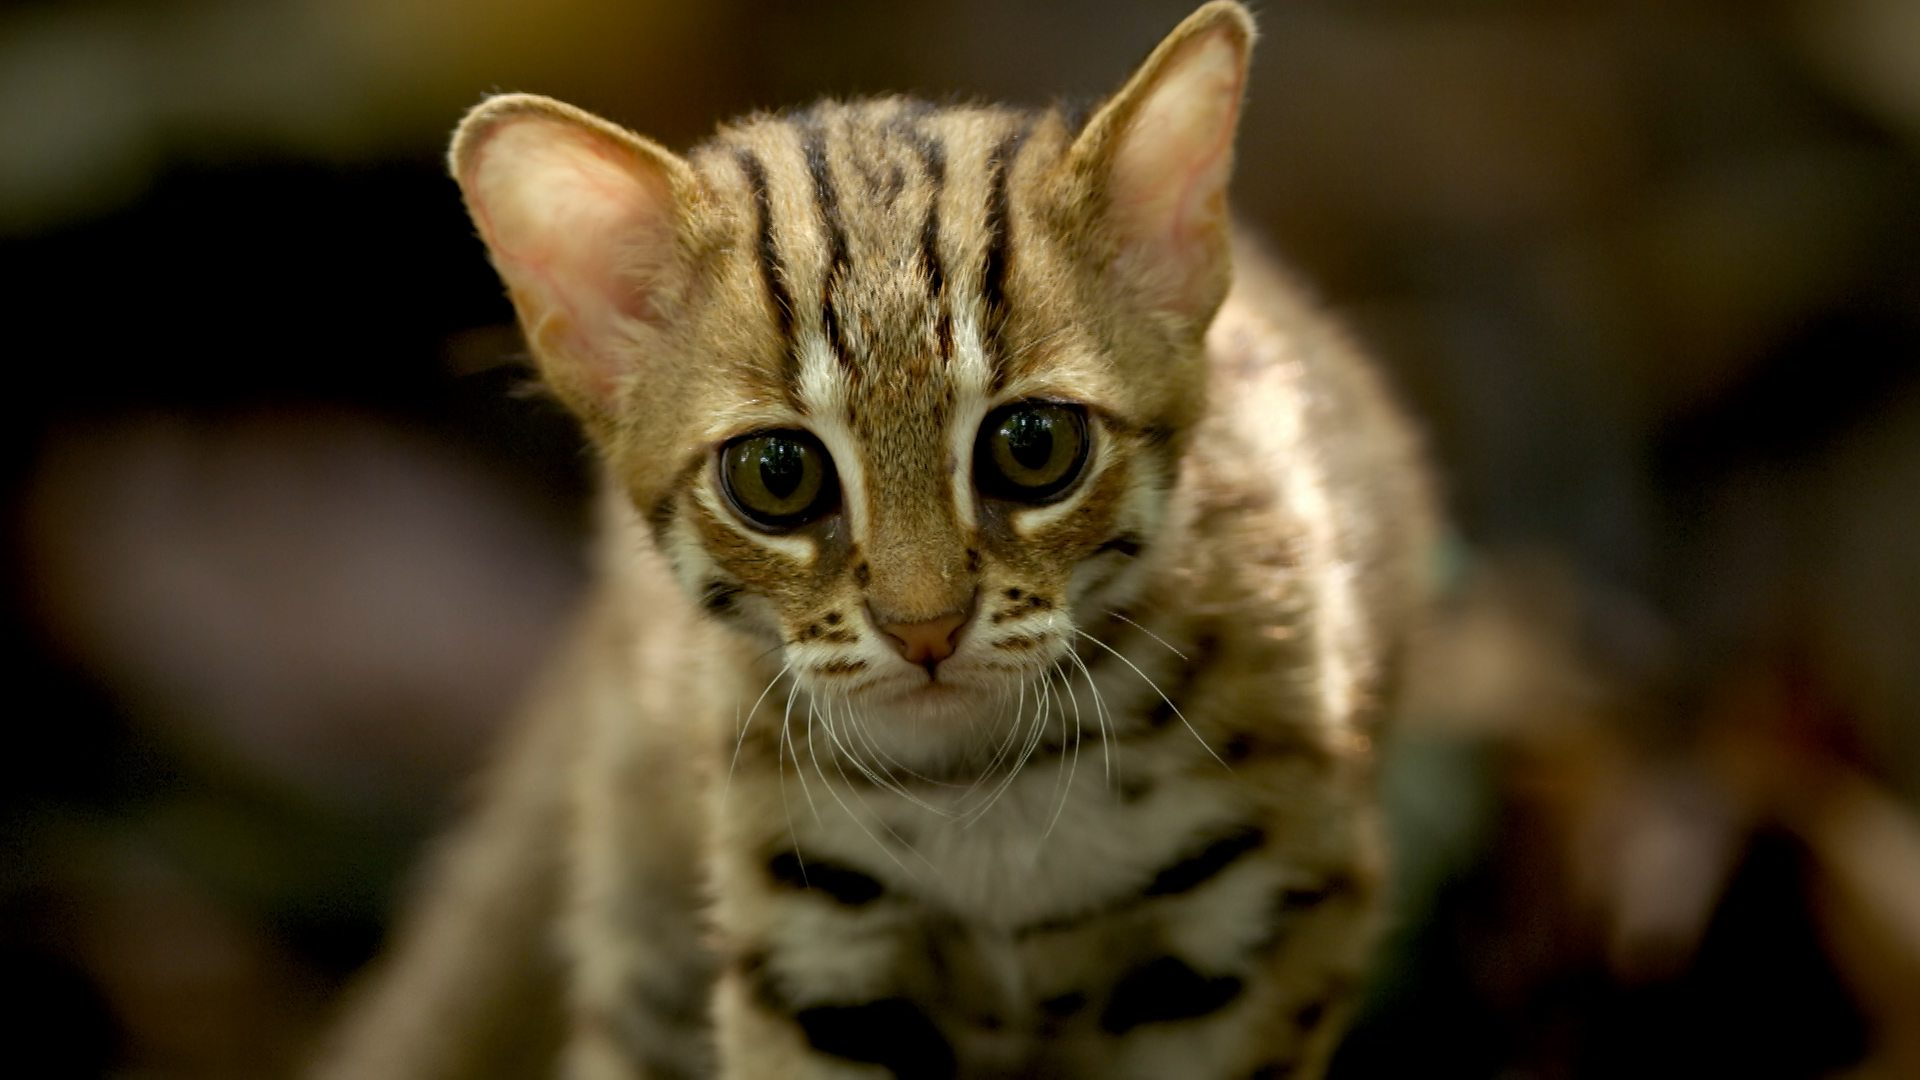 The smallest cat in the world - who is she 28